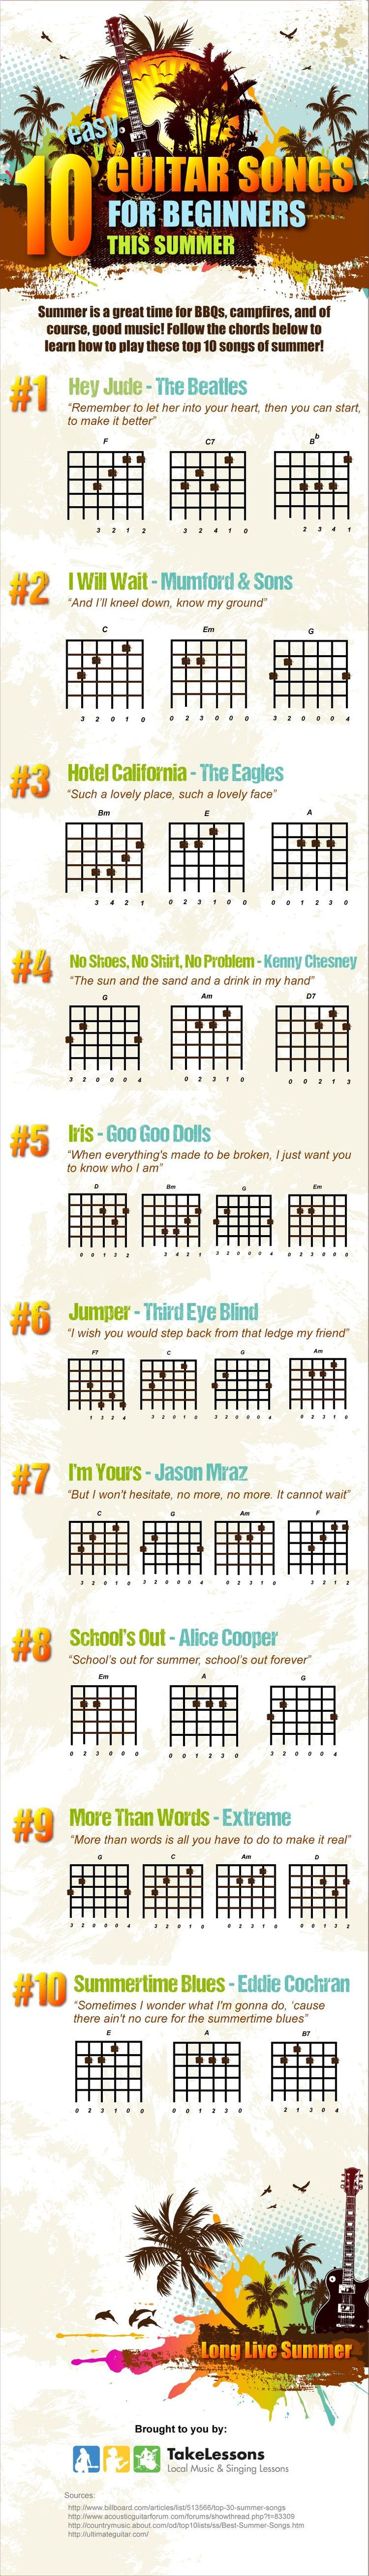 Top 20 Easy Acoustic Guitar Tabs/Songs For Beginners